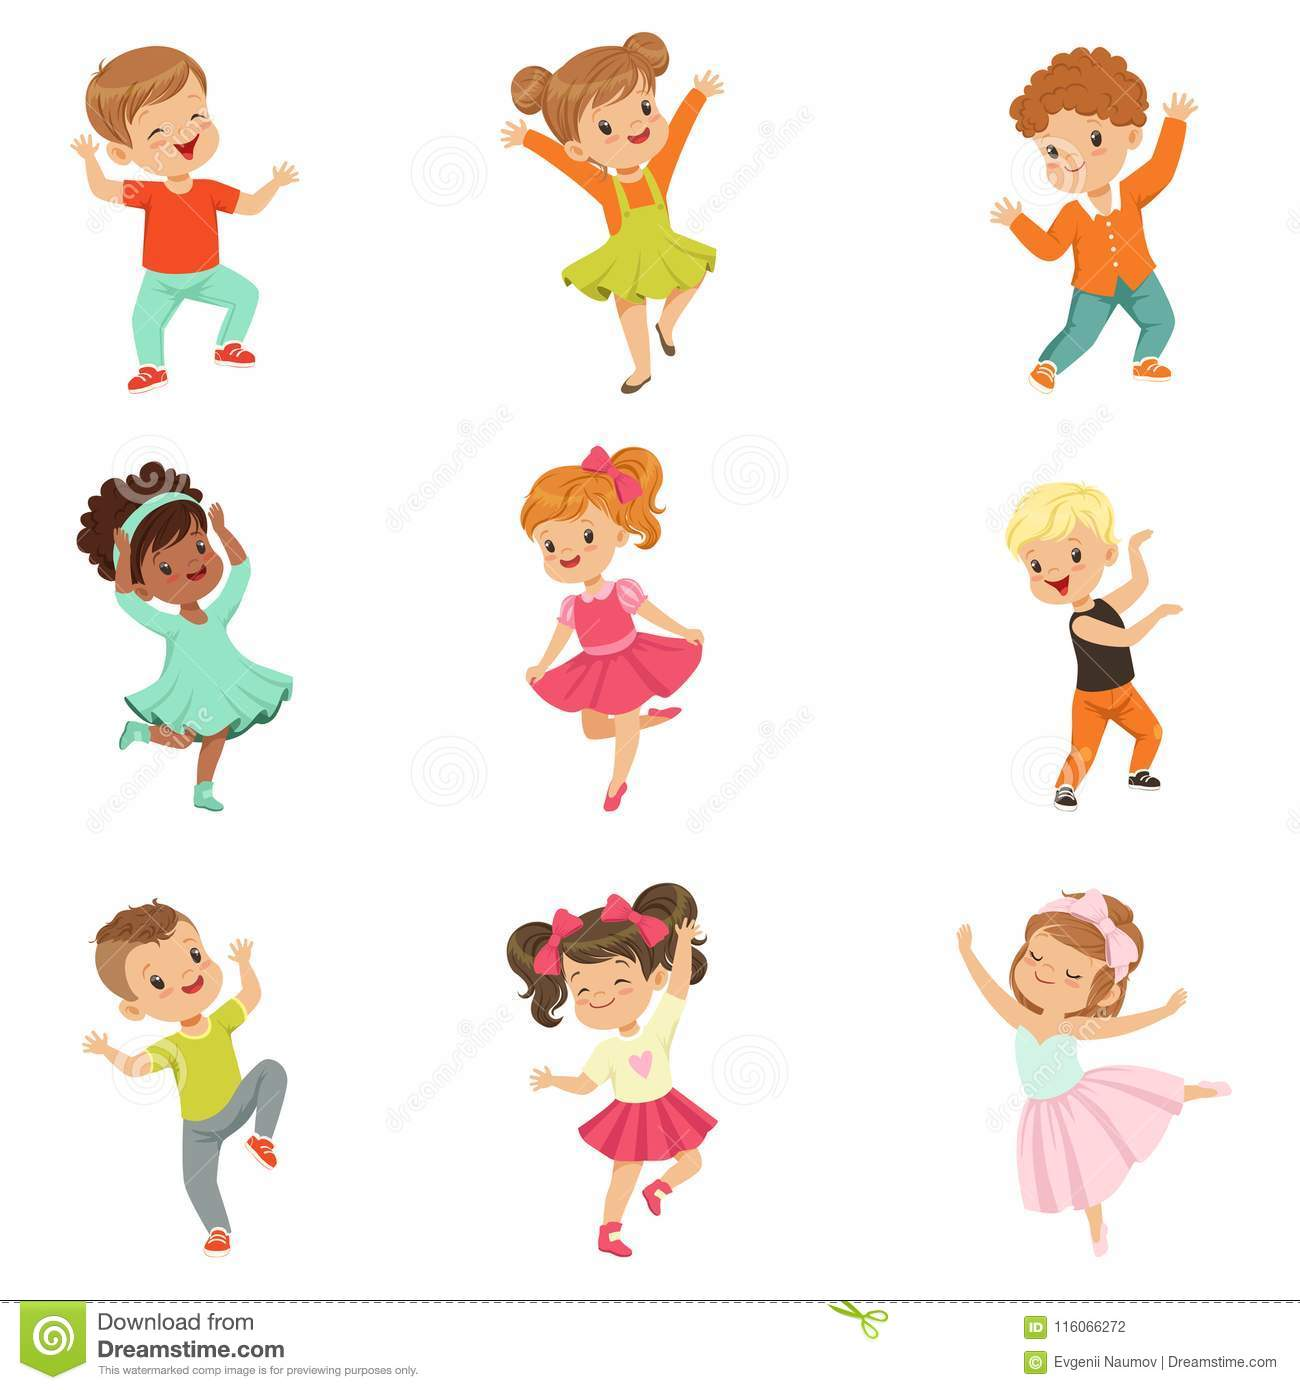 Cute little kids dancing set, modern and classical dance performed by children vector Illustrations on a white